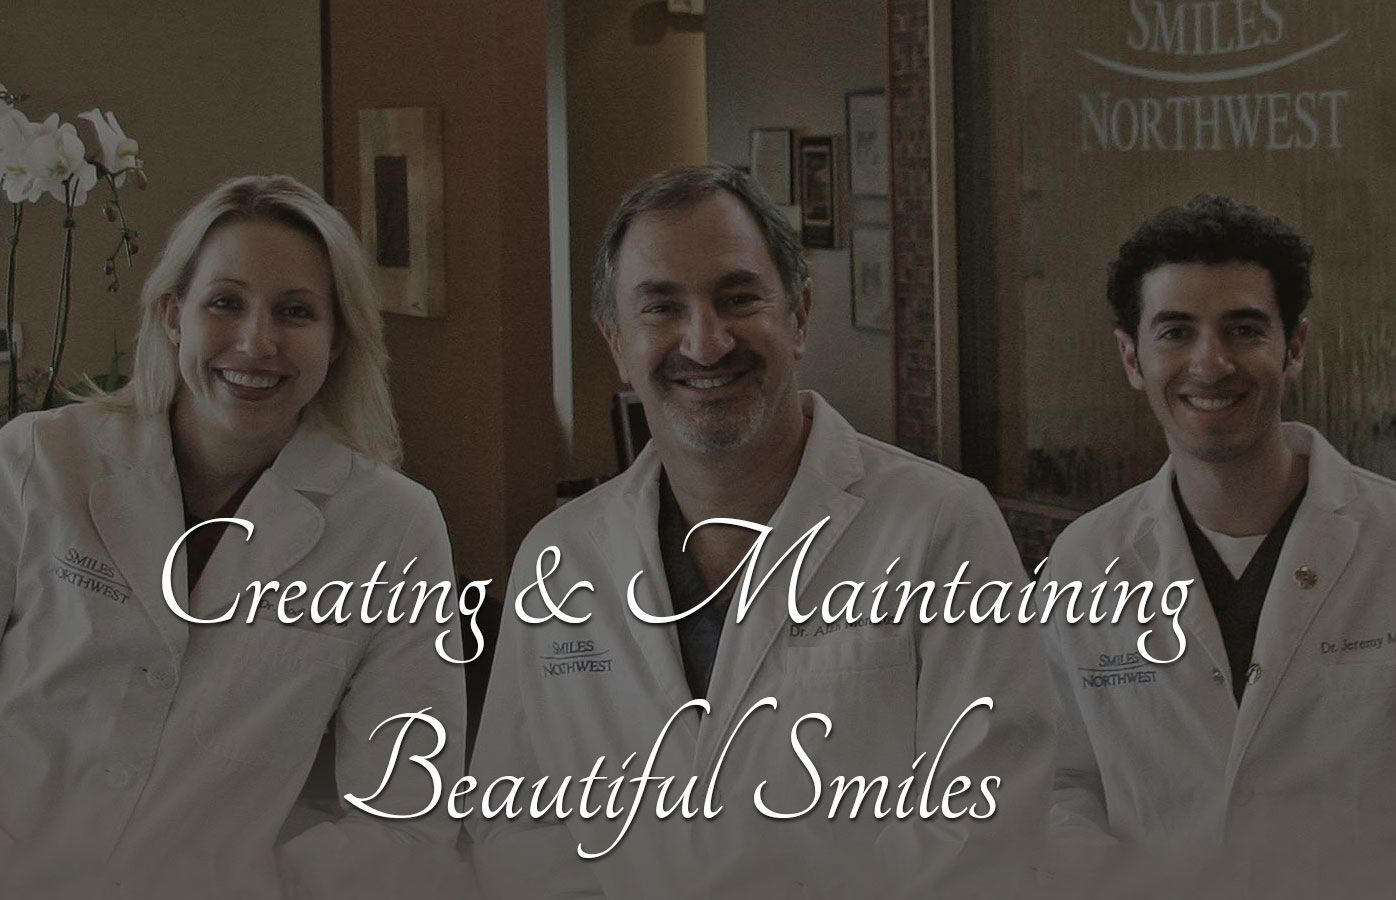 Dr. Montrose, Dr. Dotson, and Dr. Jeremy Montrose are dentists in Beaverton who focus on giving patient's the smile of their dreams.